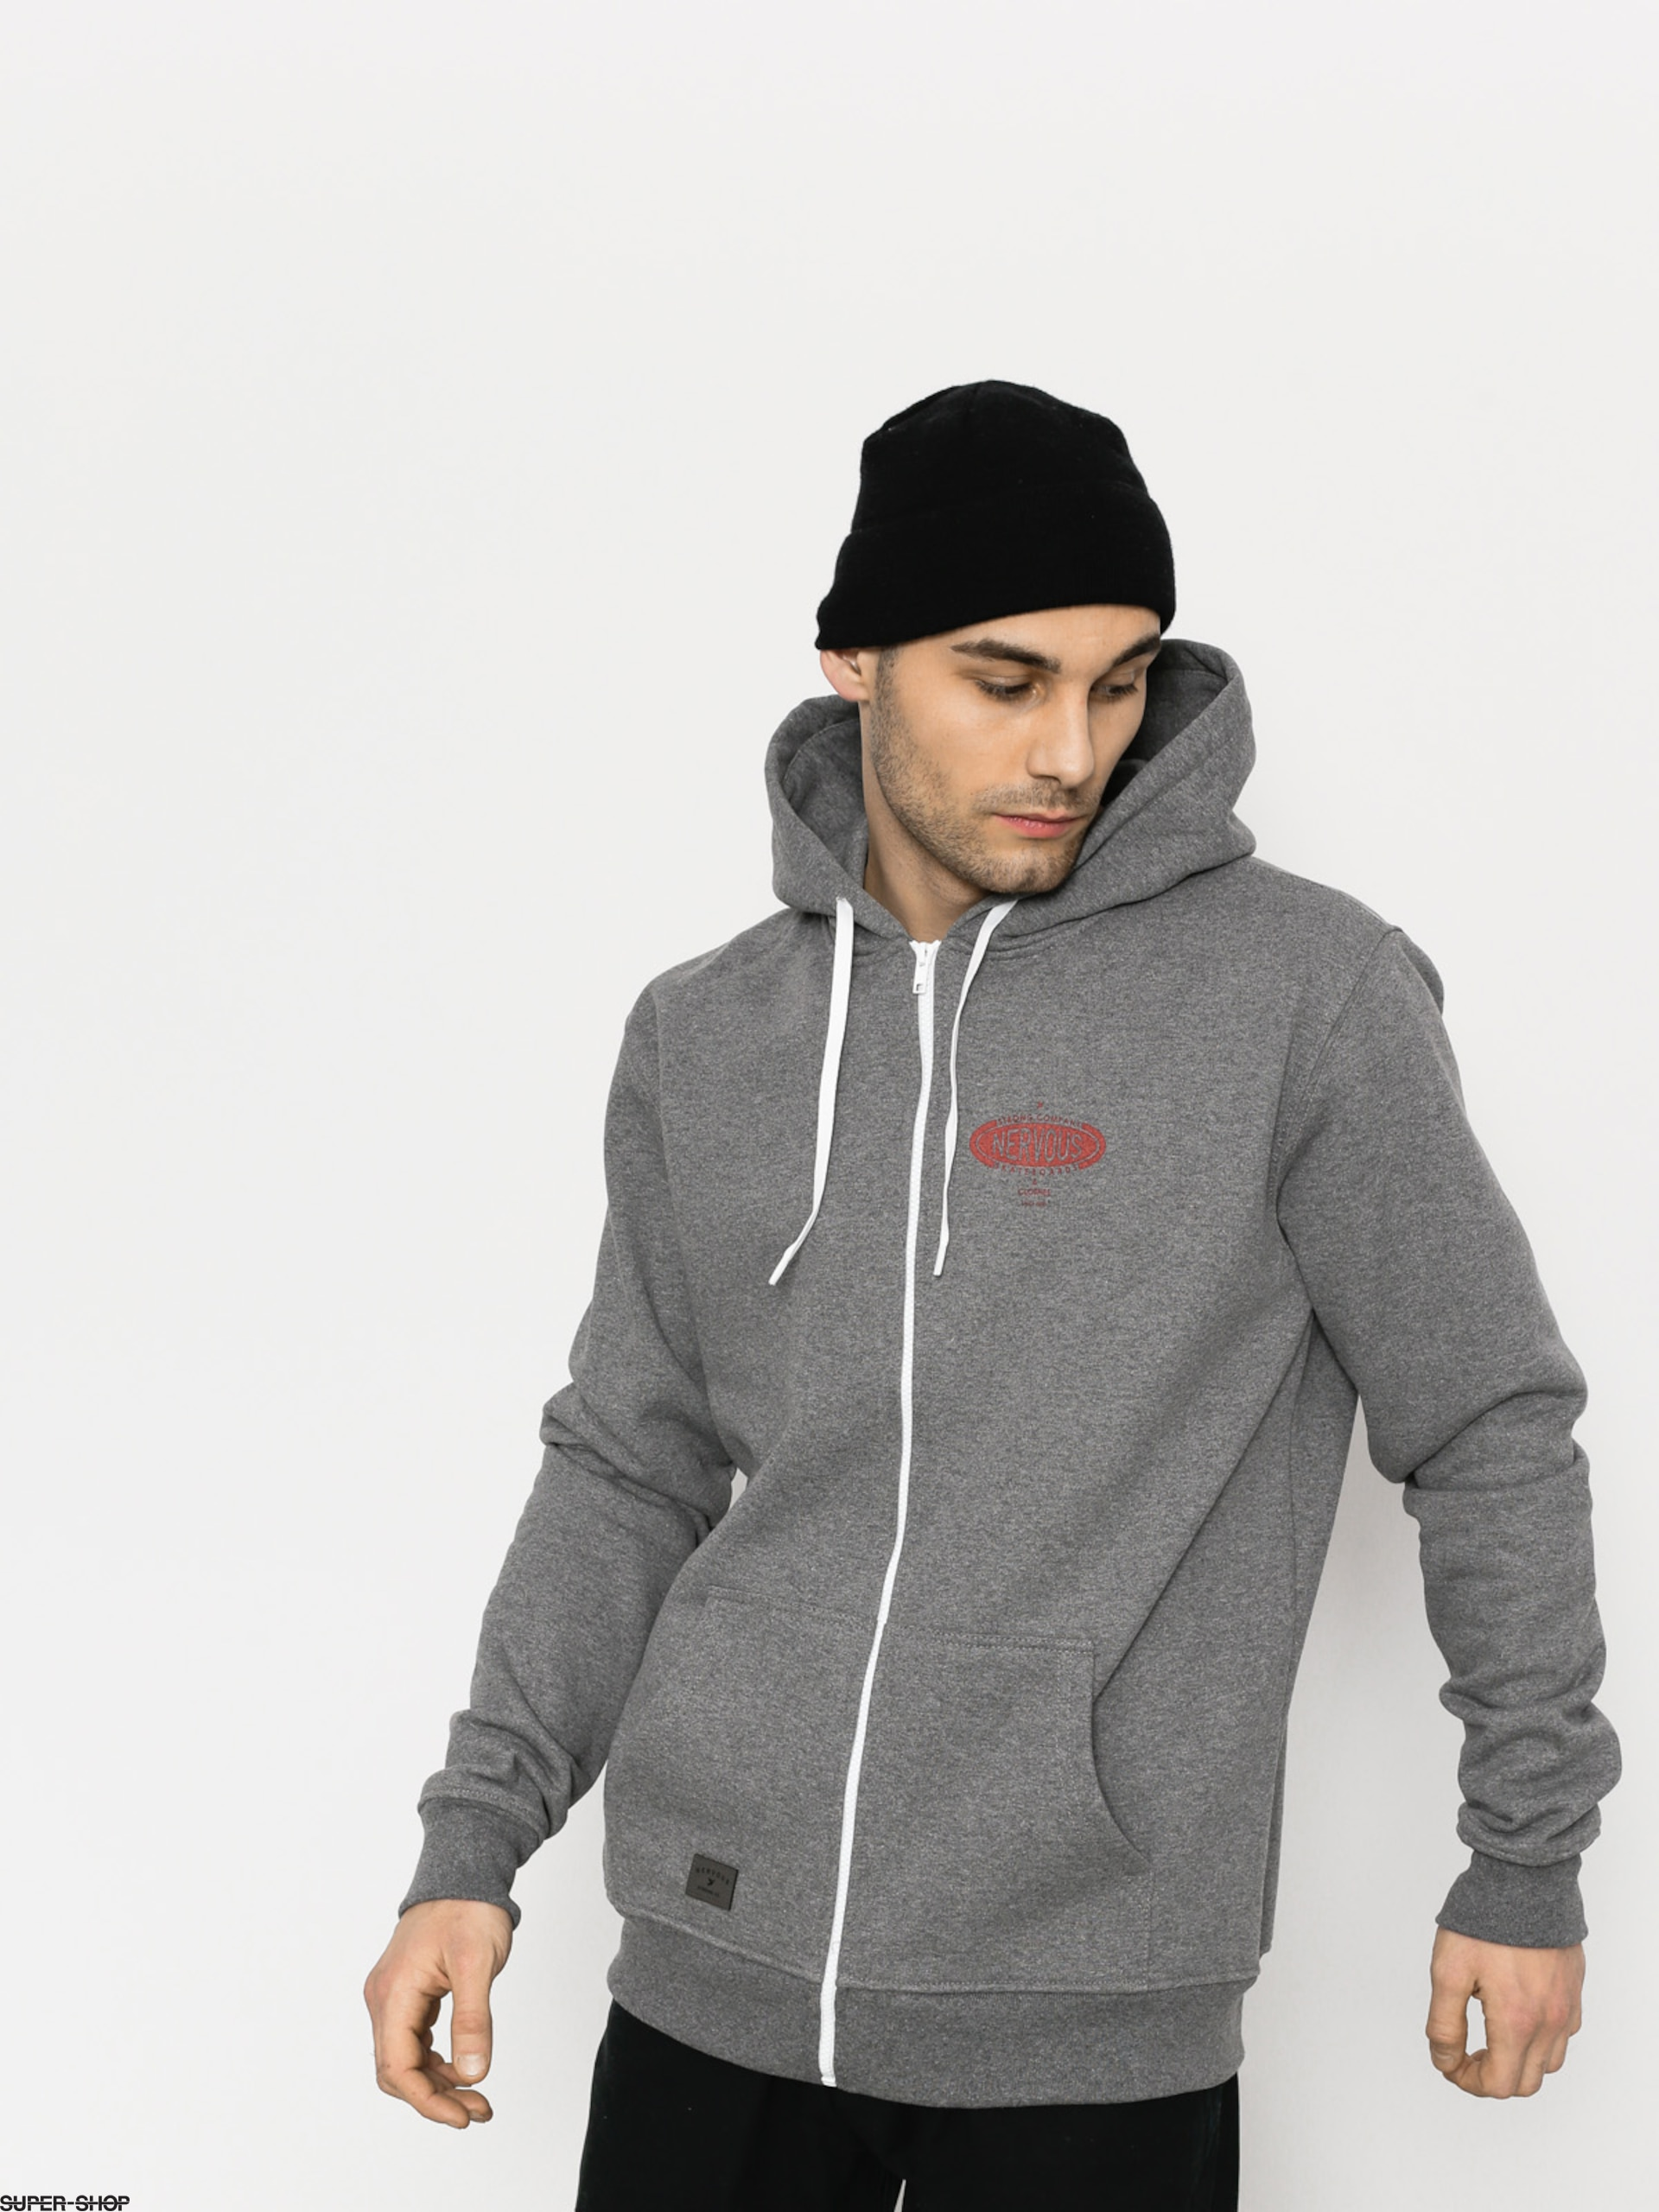 Nervous Hoody Tire Shop ZHD (grey)